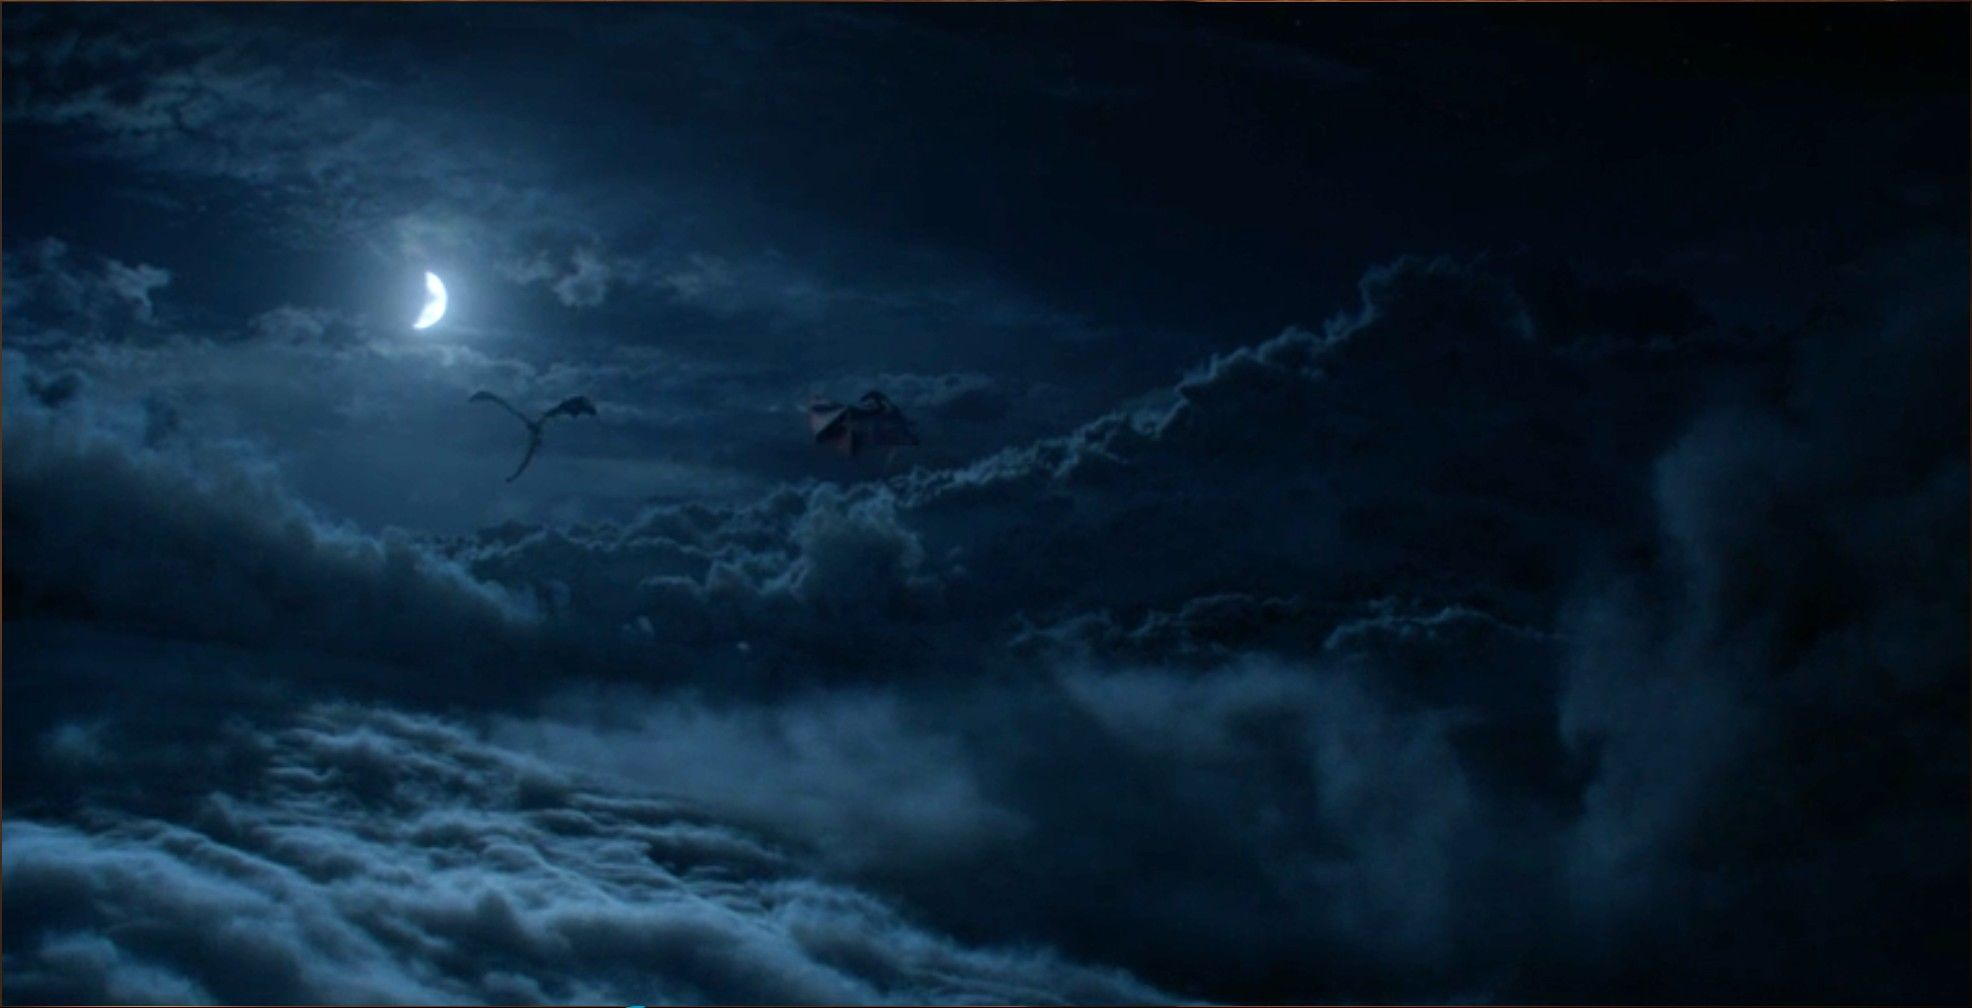 Dragons In The Night Sky Game Of Thrones - Game Of Thrones Dragons The Long Night - HD Wallpaper